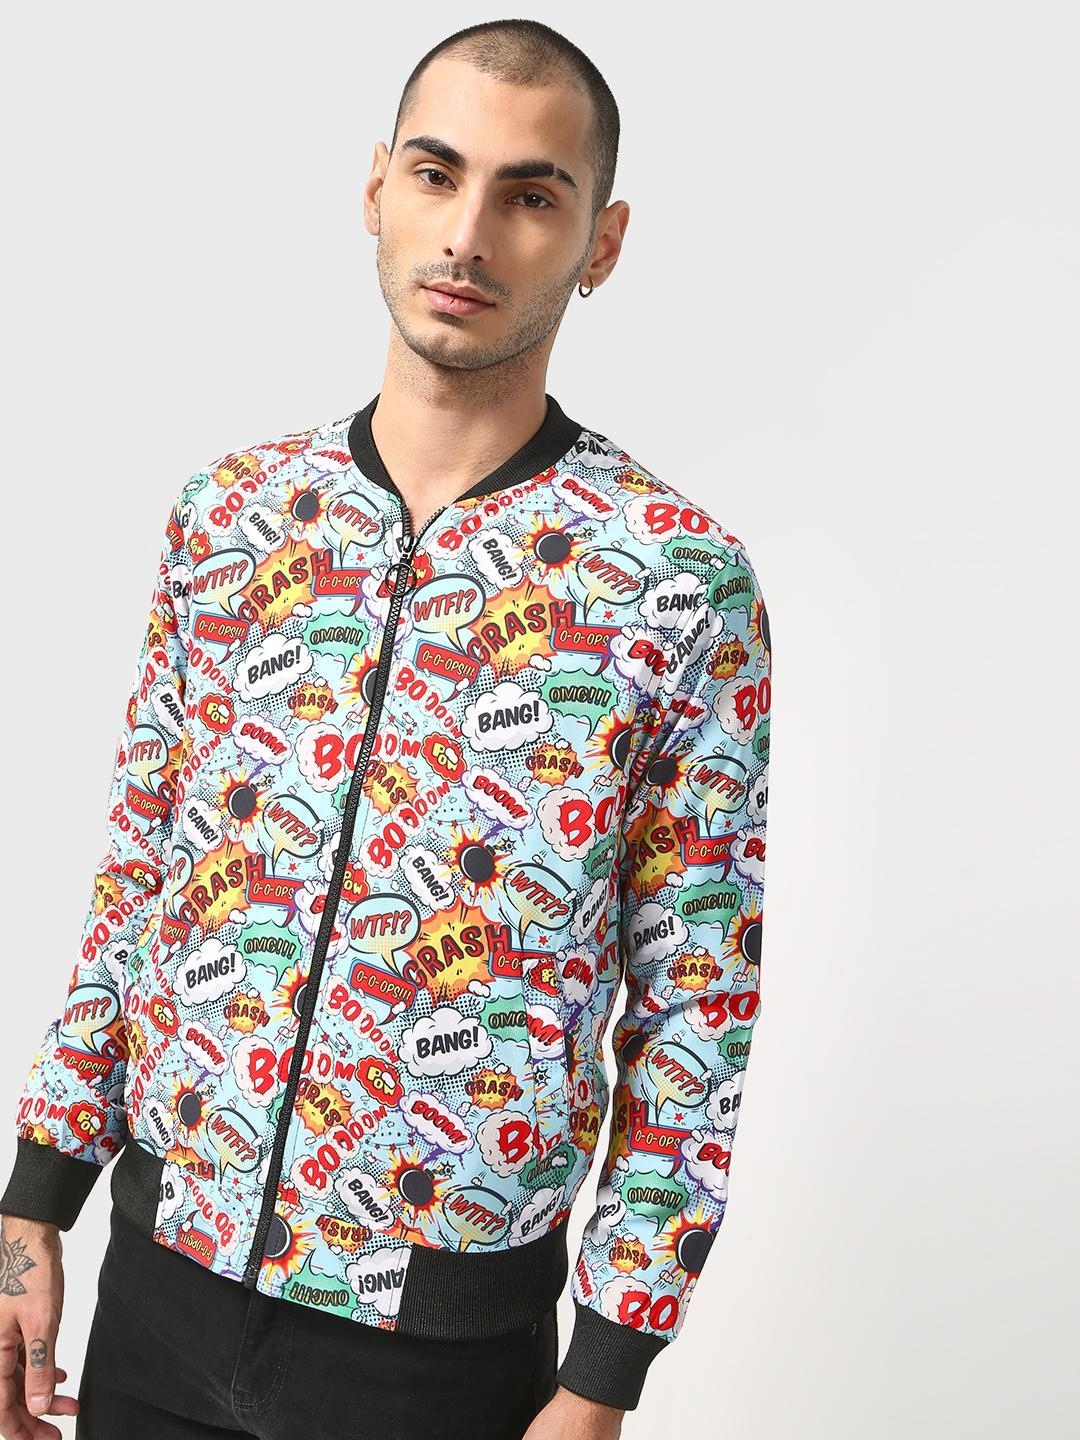 SID & SOM Multi Text Placement Print Bomber Jacket 1